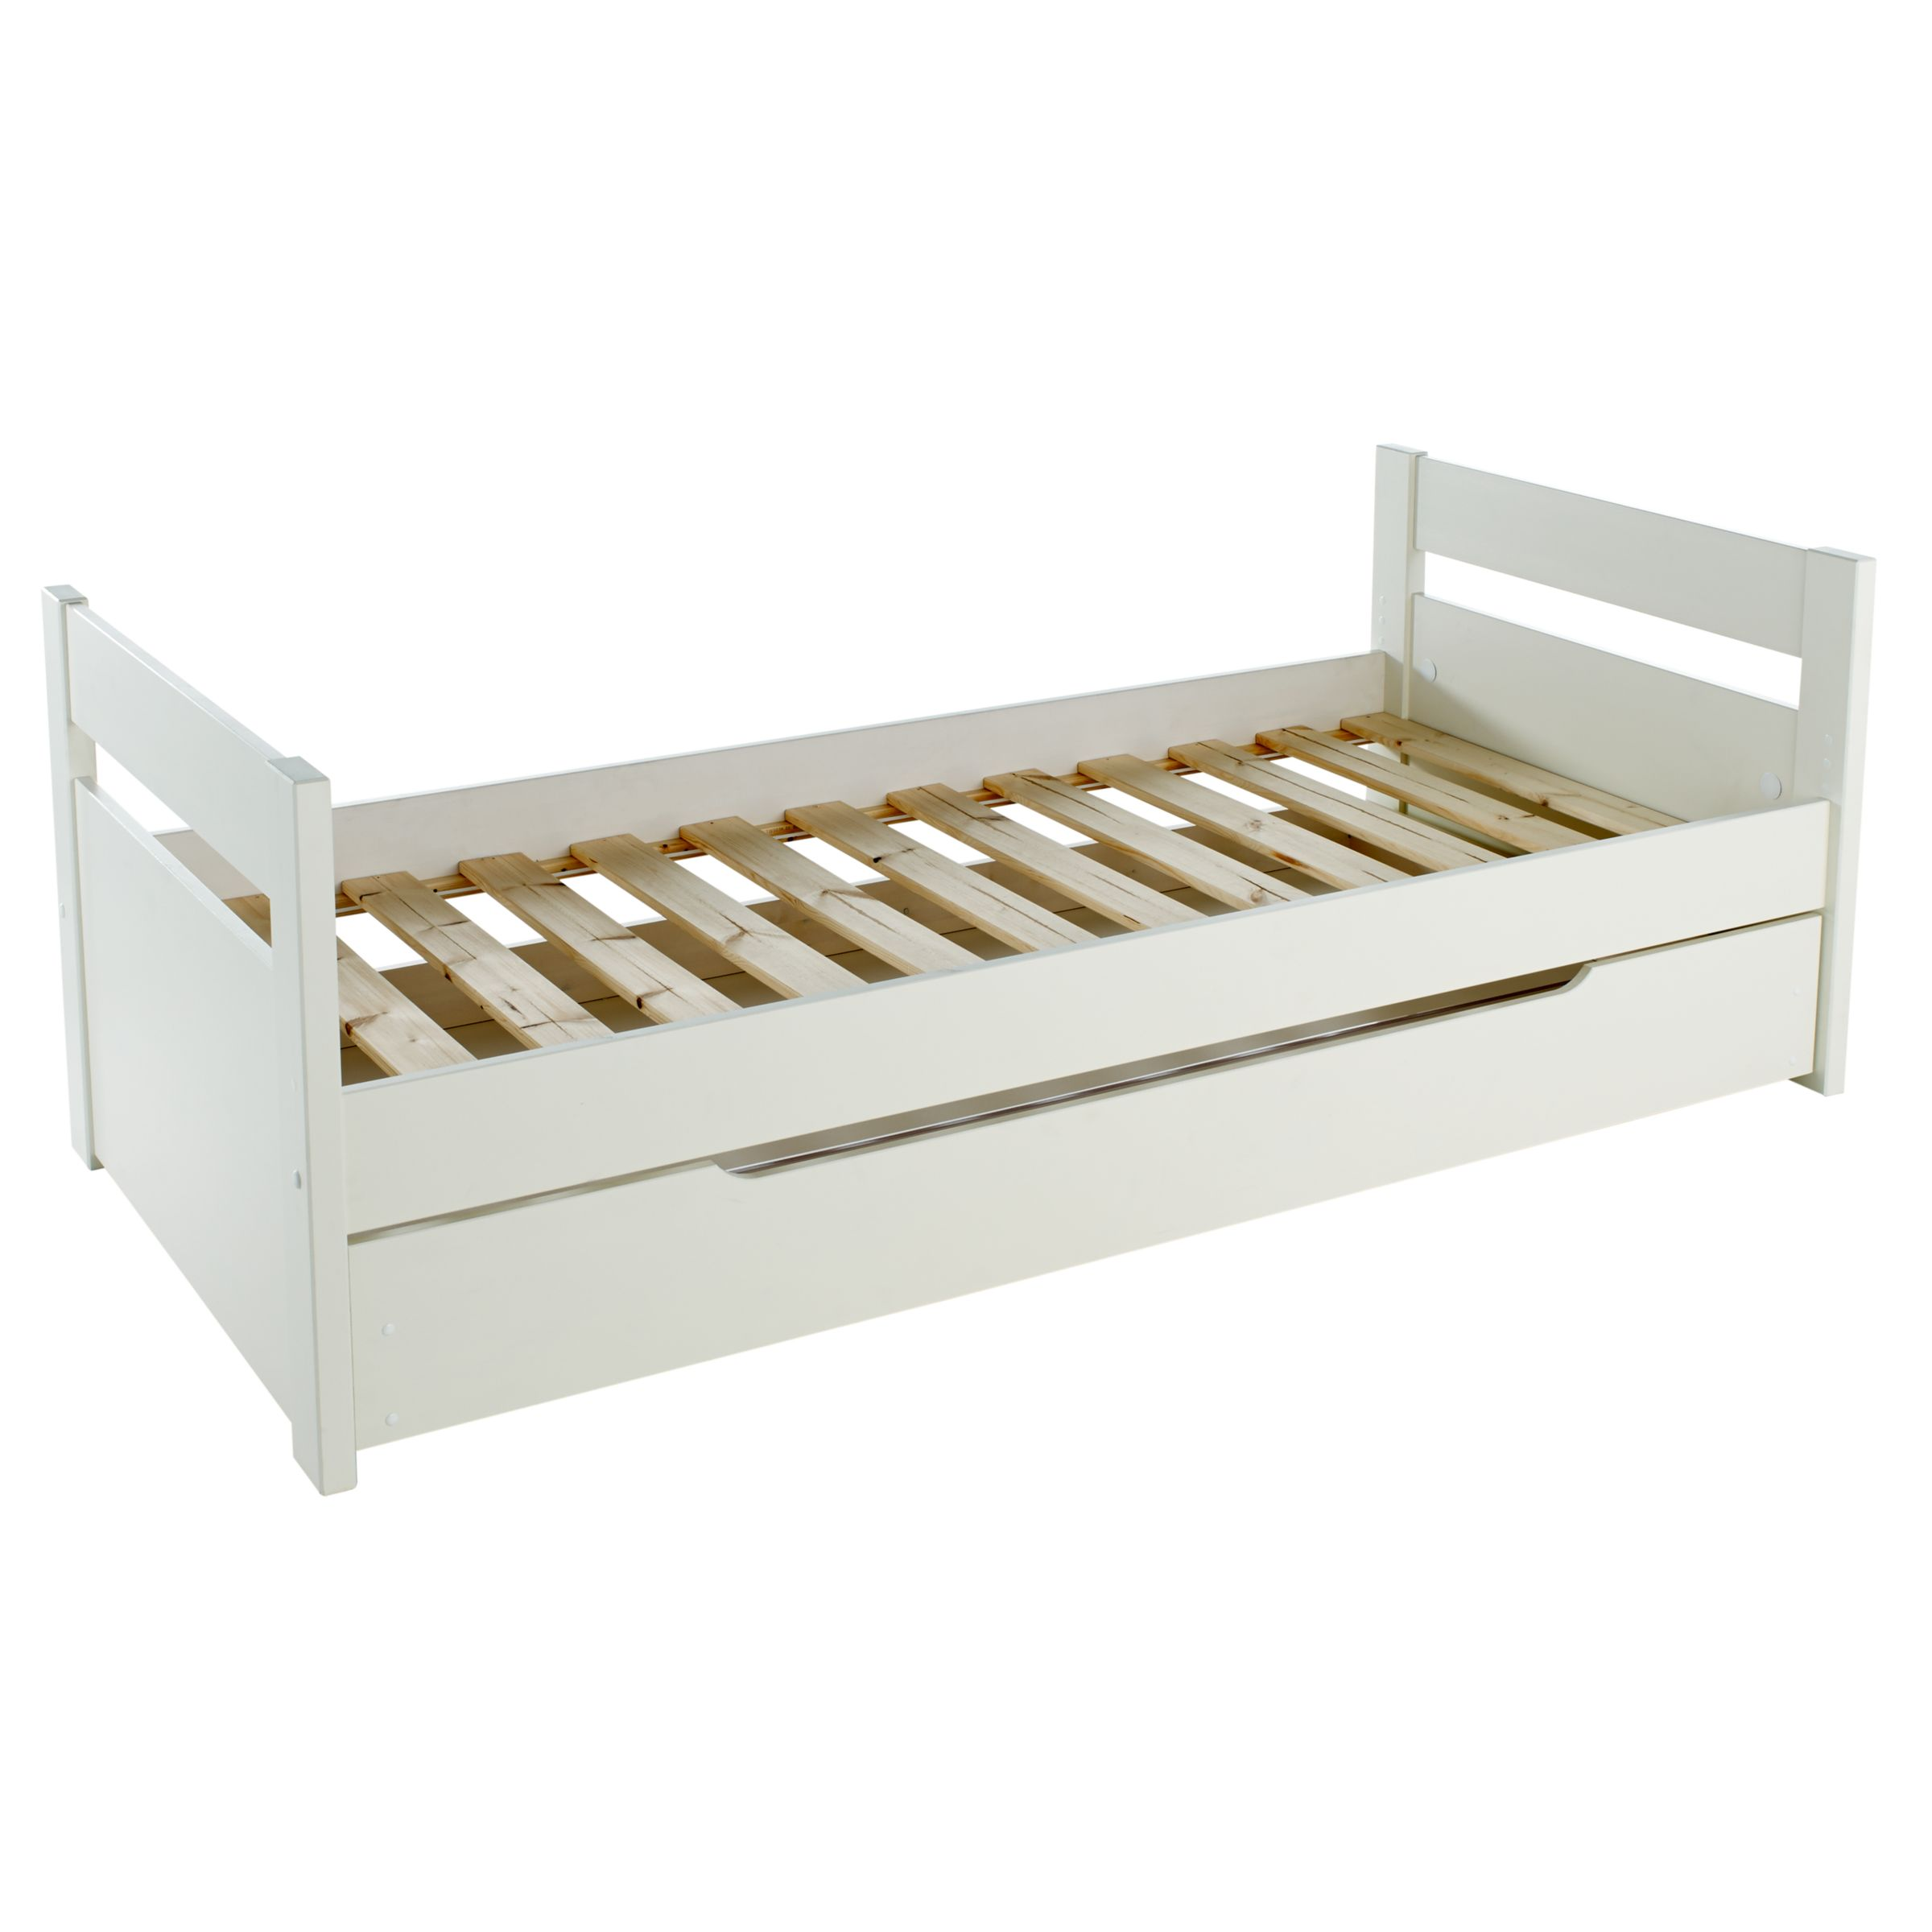 Long Single Bed Stompa Originals Guest Bed Frame And Trundle Extra Long Single